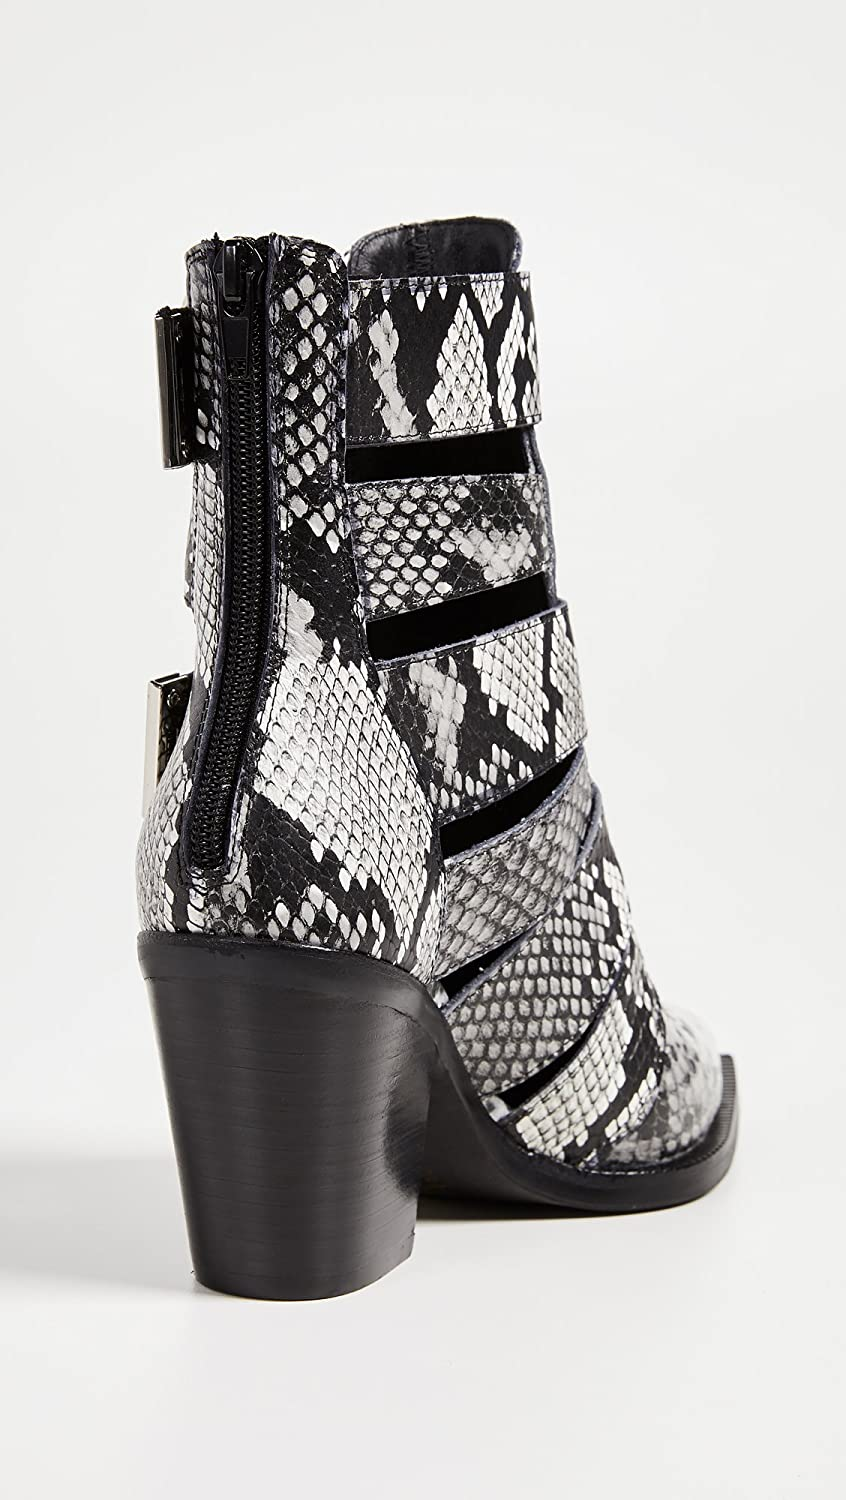 Jeffrey Campbell Women's Caceres Buckle Booties B07FCMYYZT 8 B(M) US|Black/White Snake